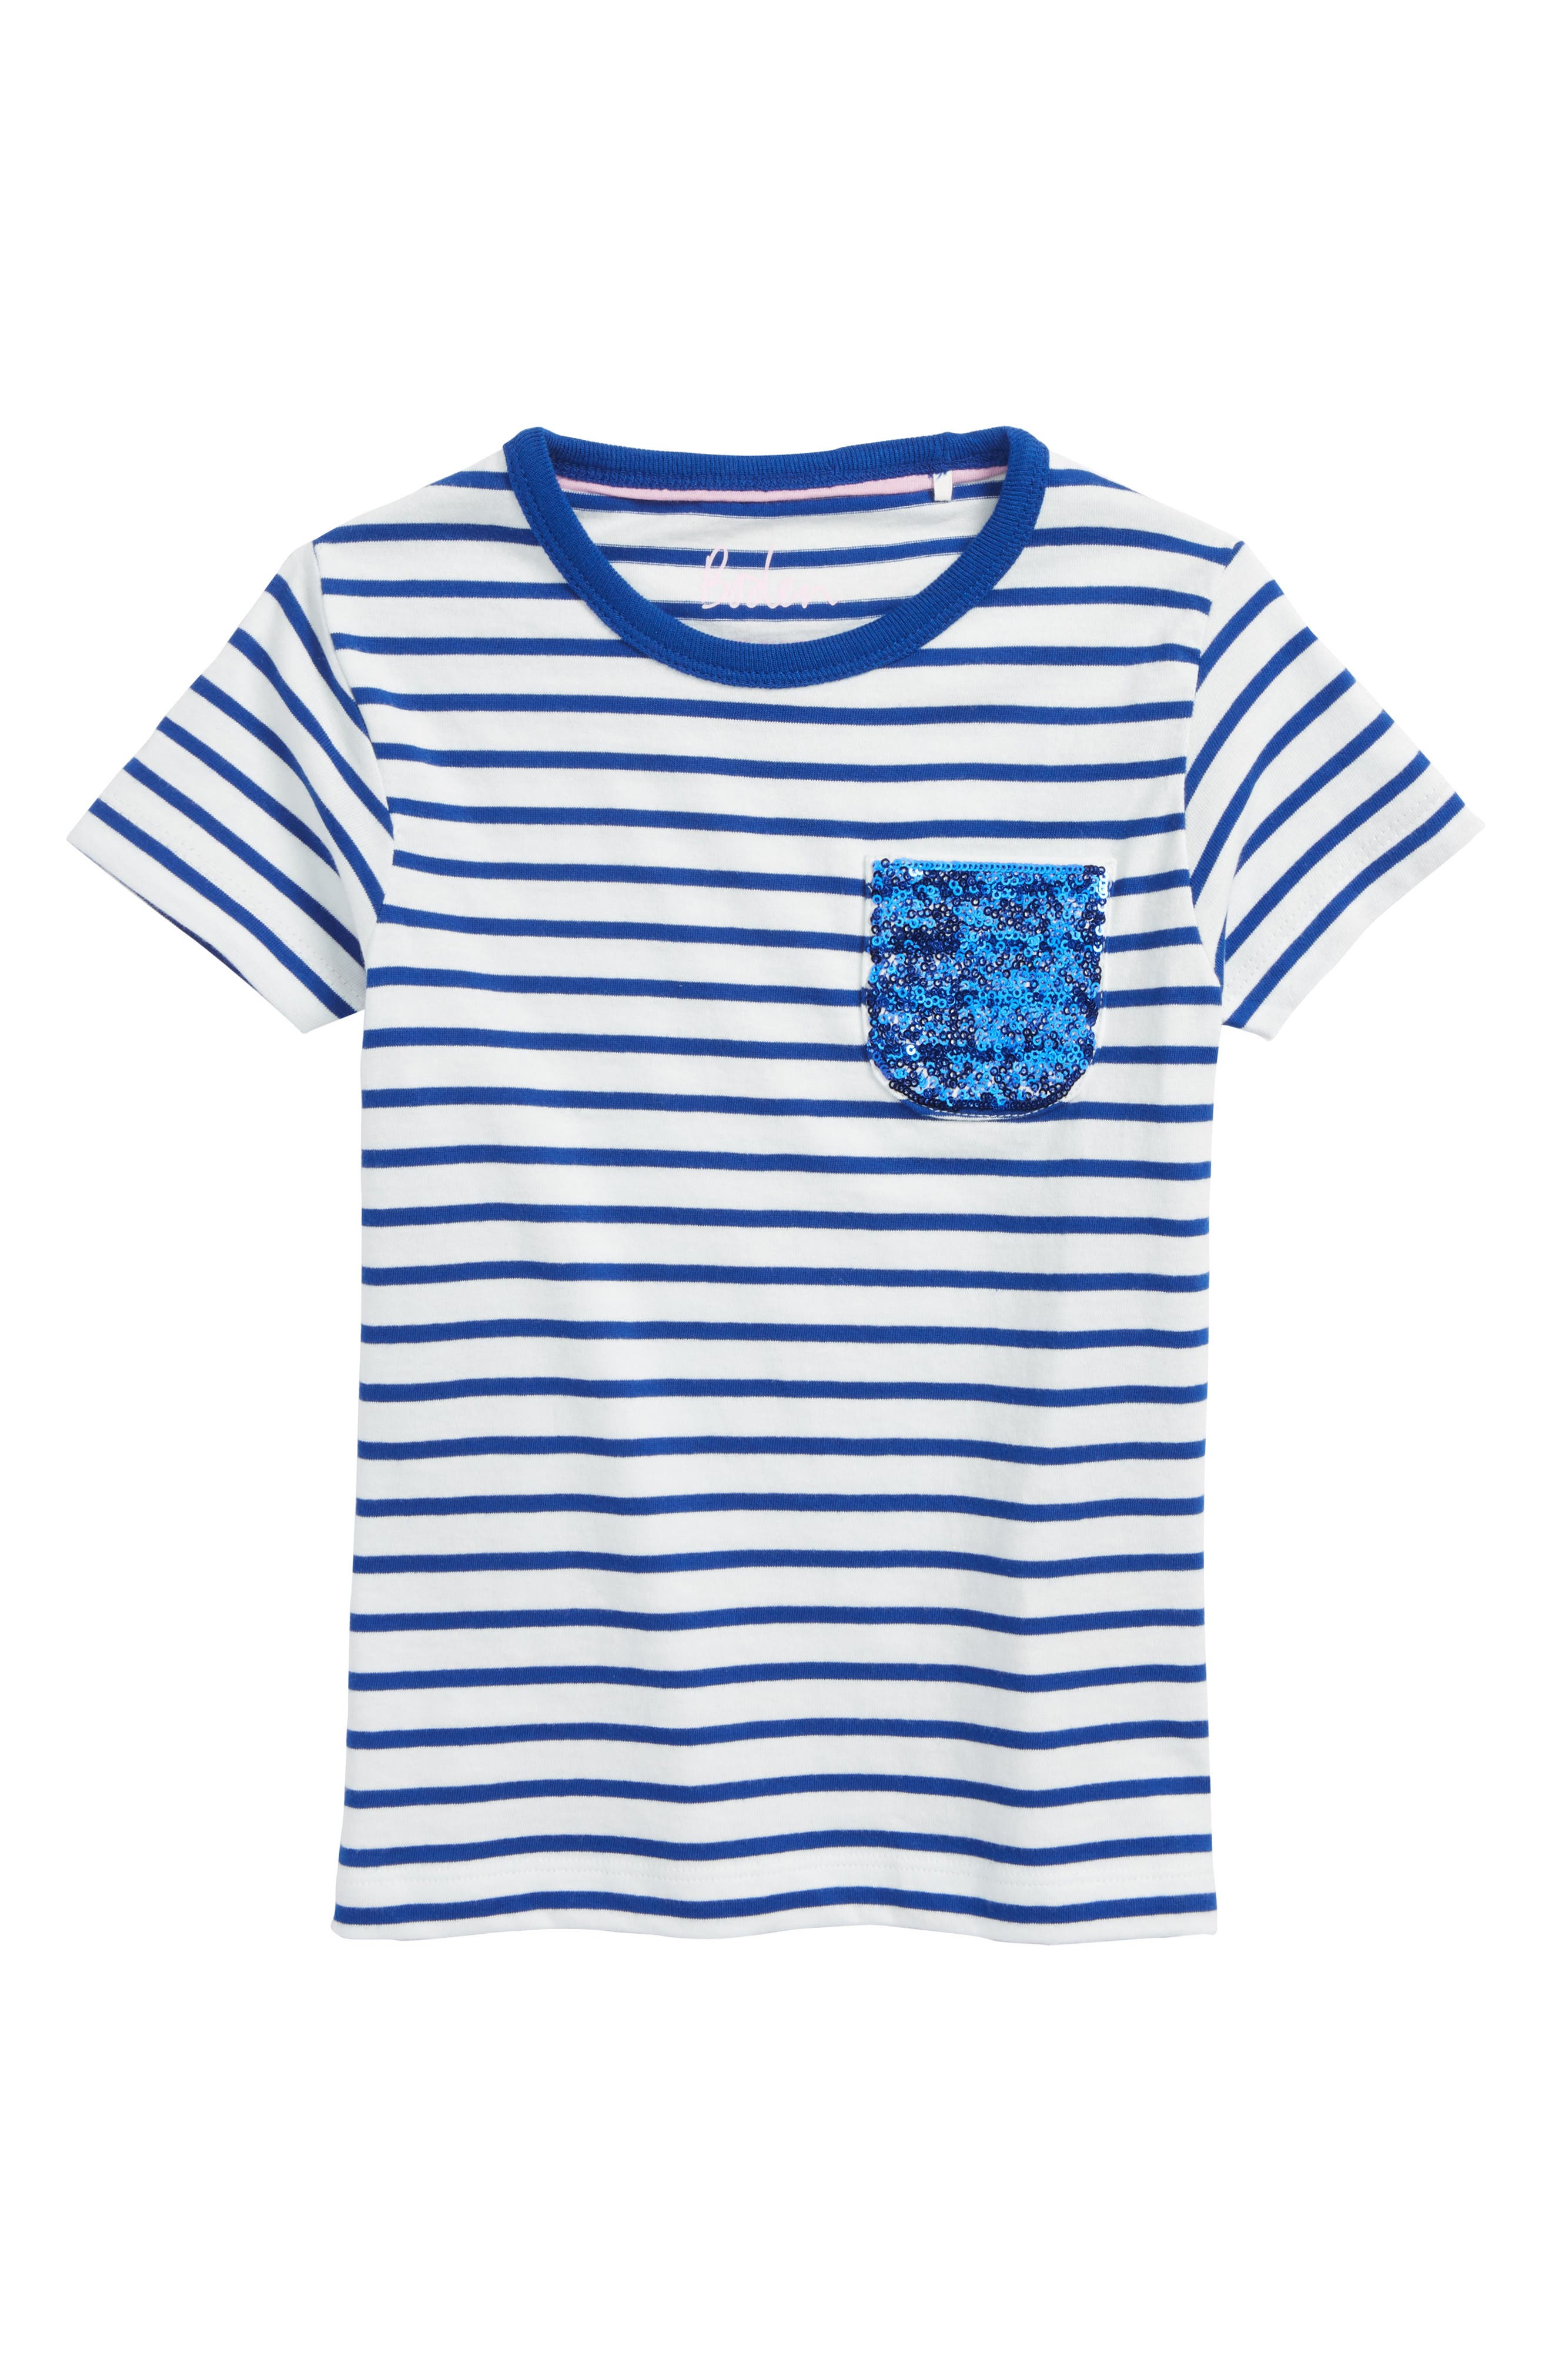 Sequin Pocket Tee,                             Main thumbnail 1, color,                             Ivory/ Orion Blue